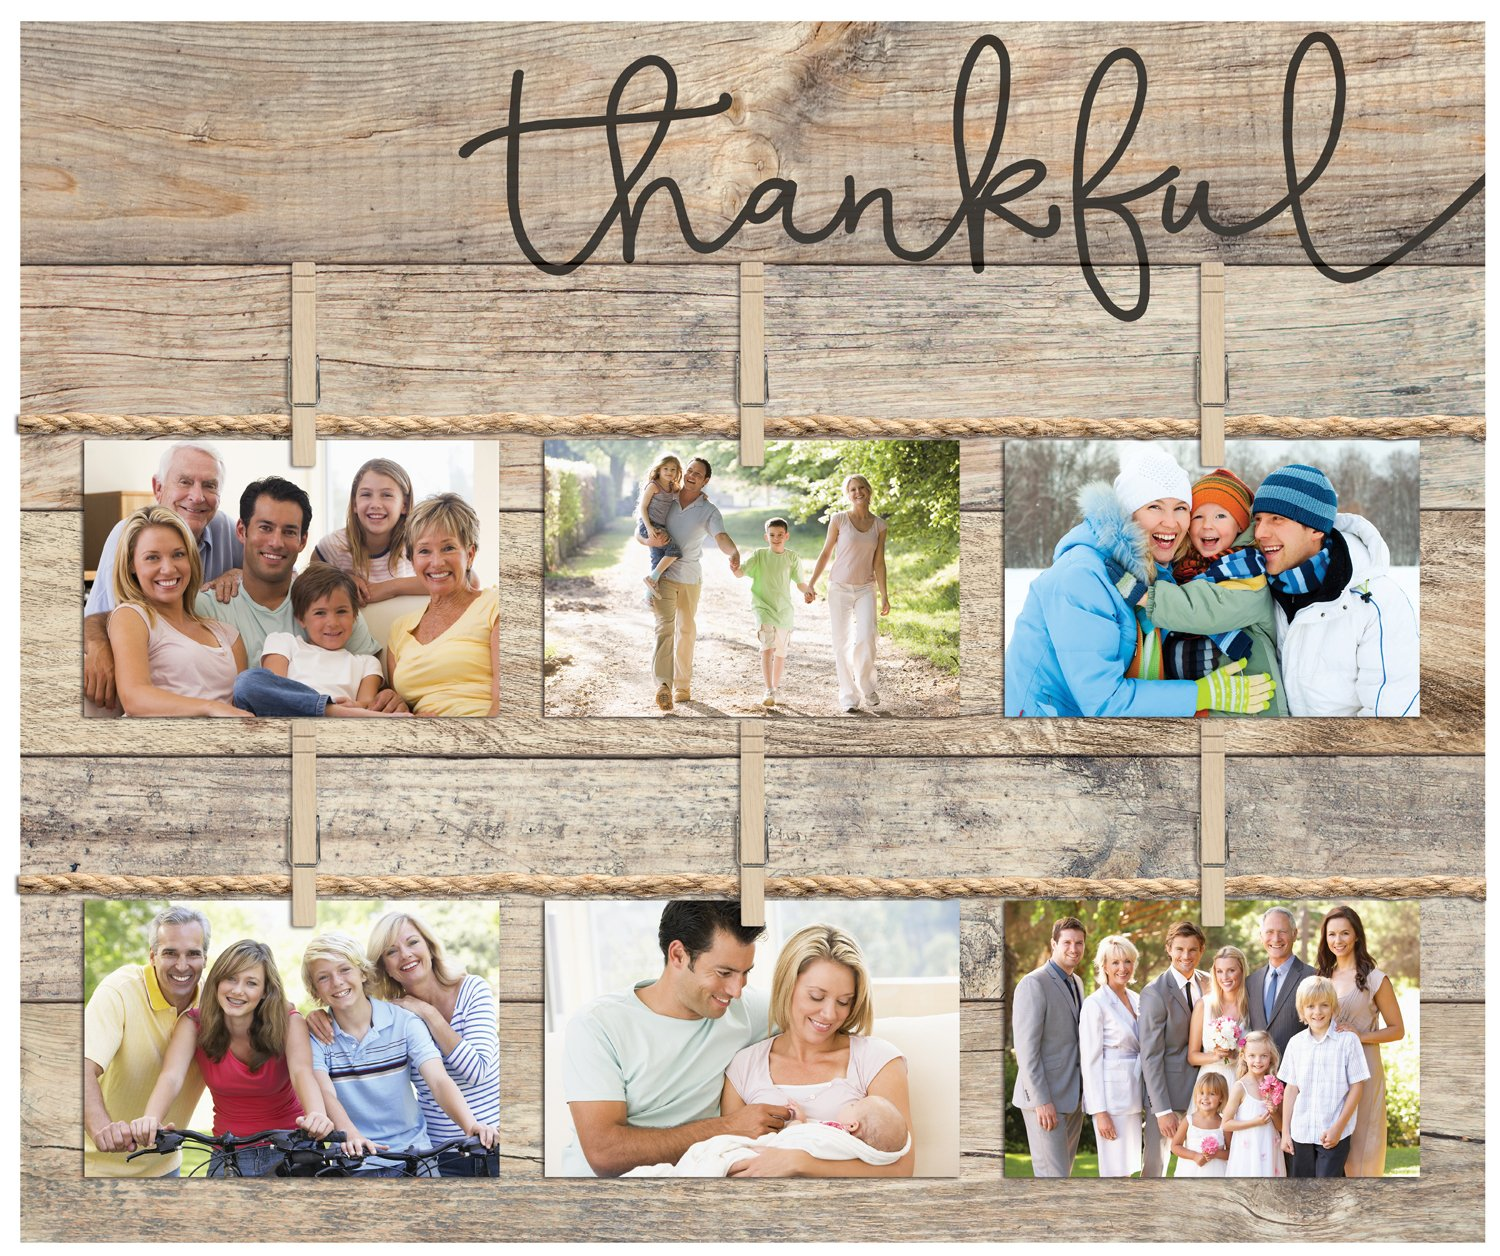 P. Graham Dunn Thankful Script Design 18 x 21 Inch Solid Pine Wood Clothesline Clipboard Photo and Momento Display by P. Graham Dunn